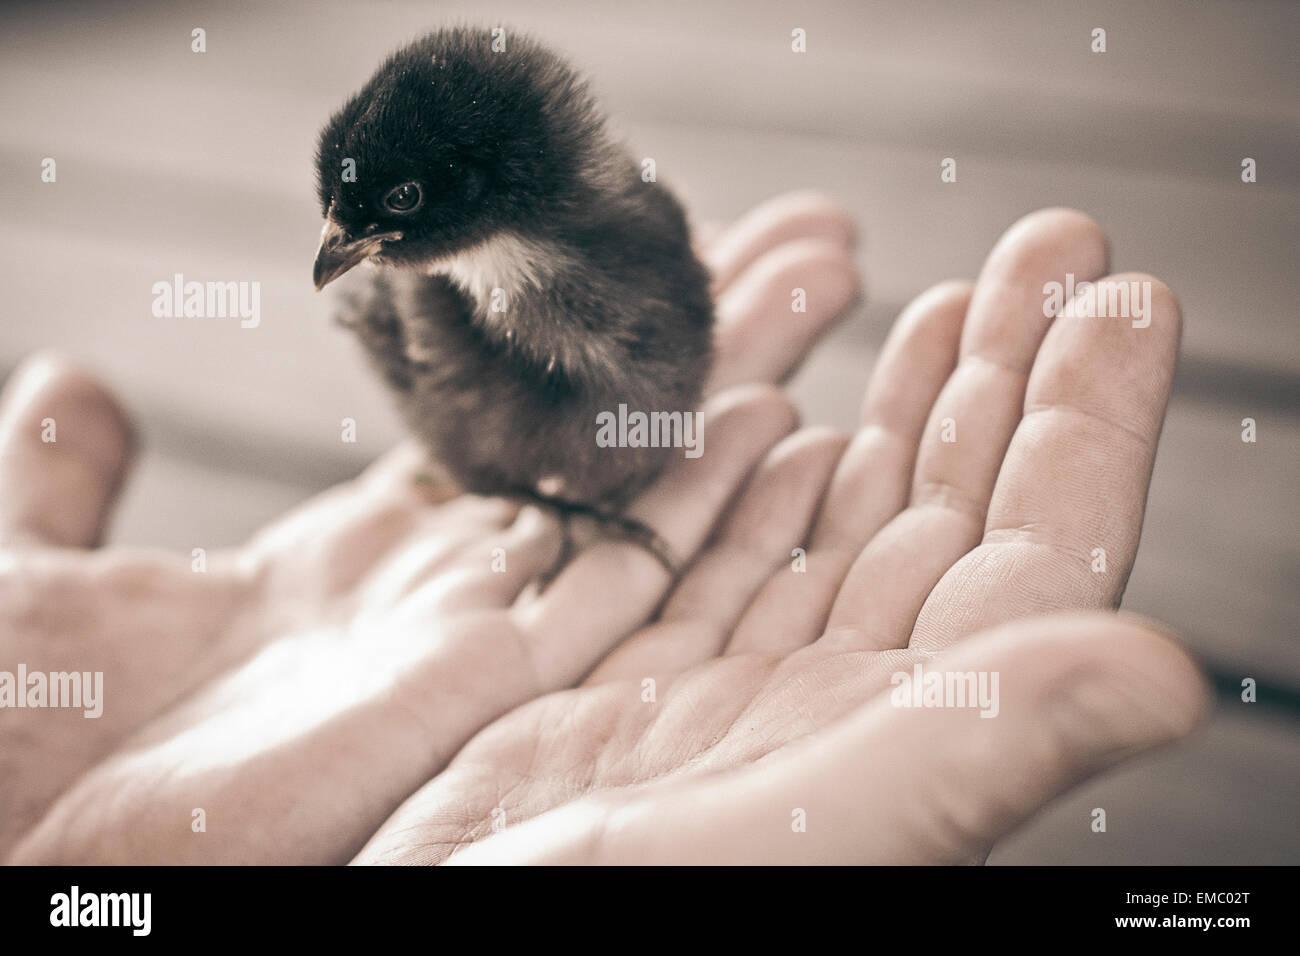 Young chicken on man's hands - Stock Image